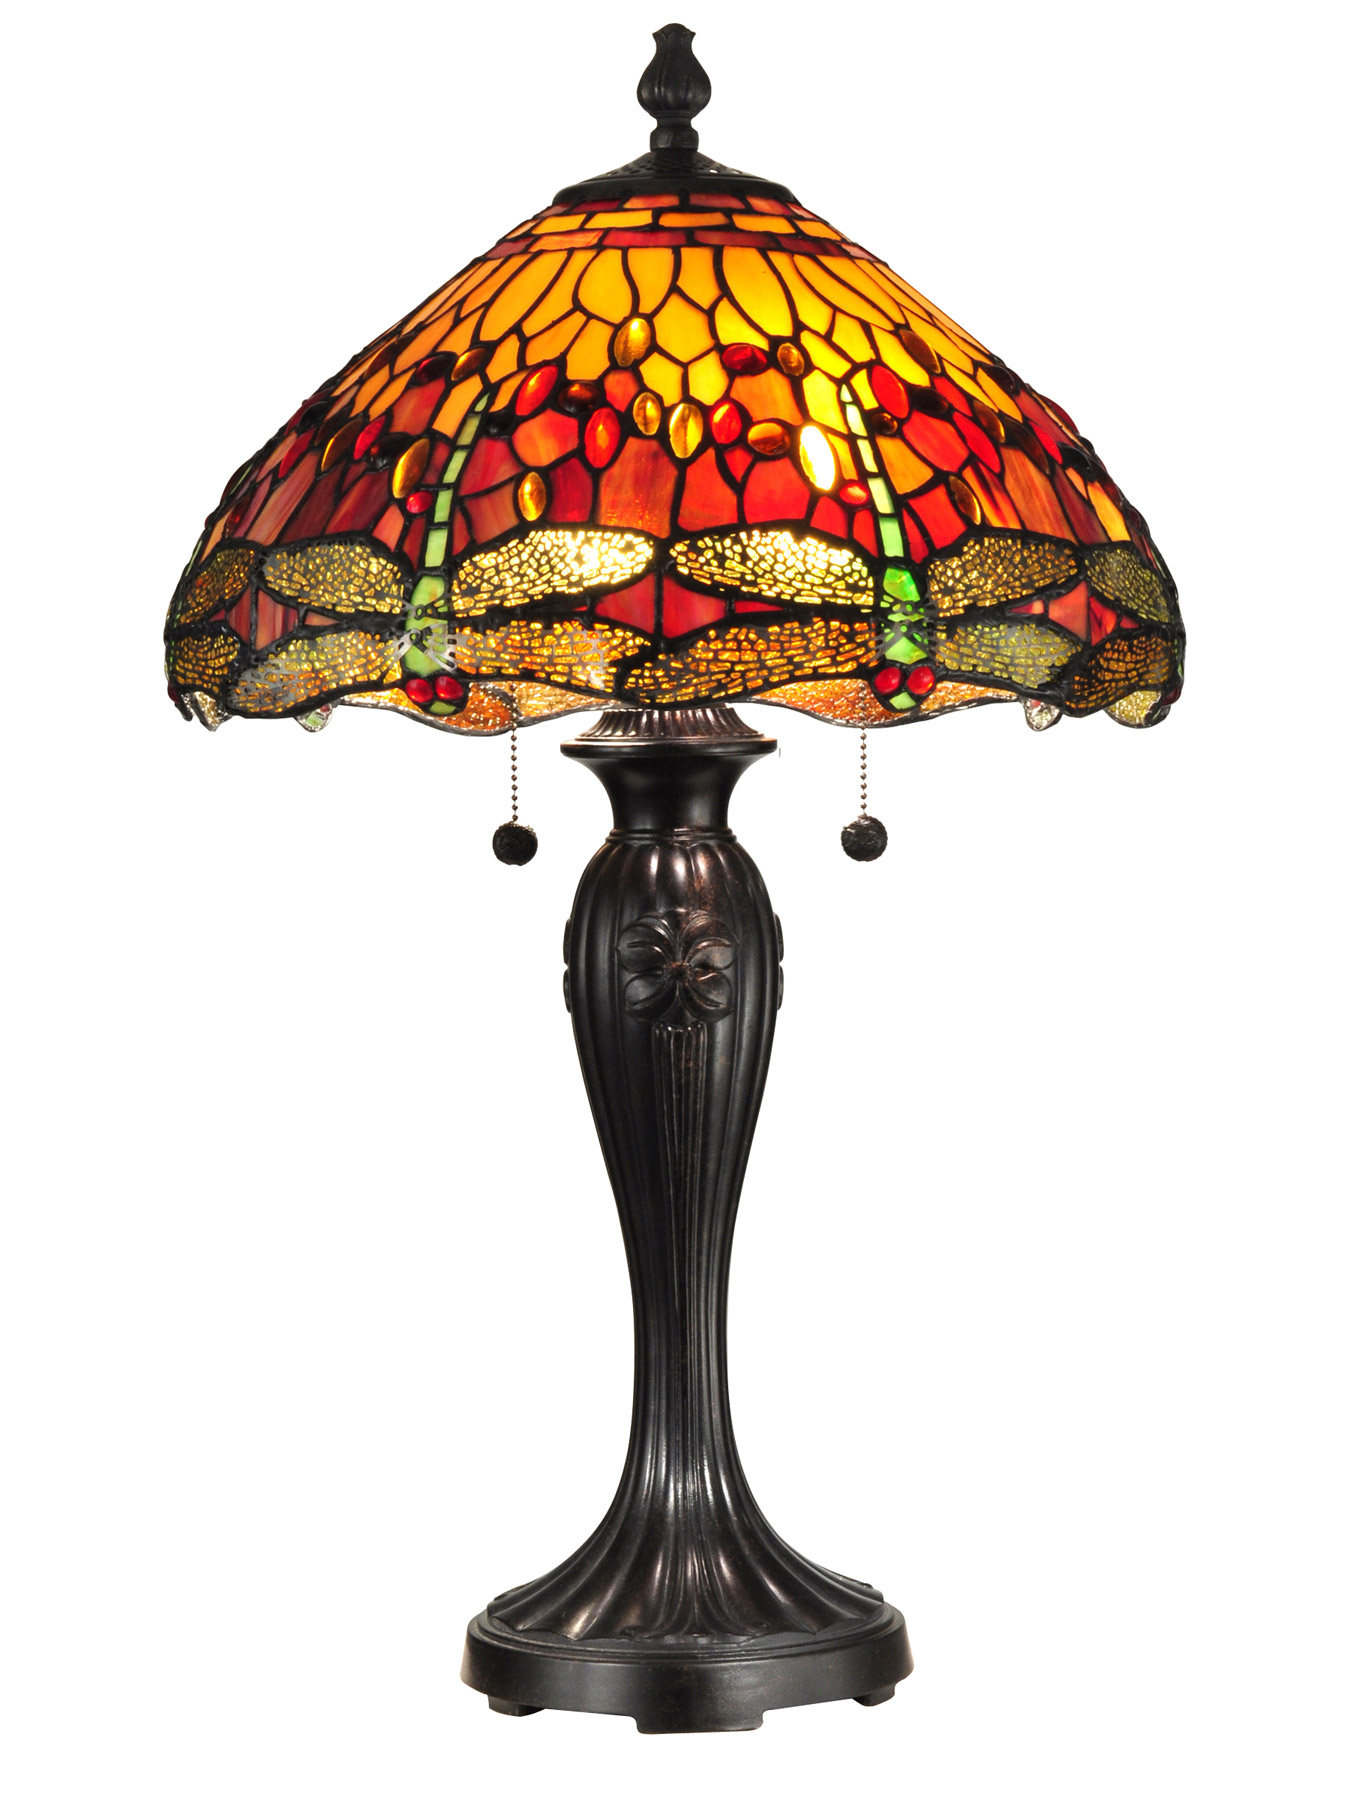 Dale Tiffany Tt12269 Tiffany Dragonfly Reves Table Lamp